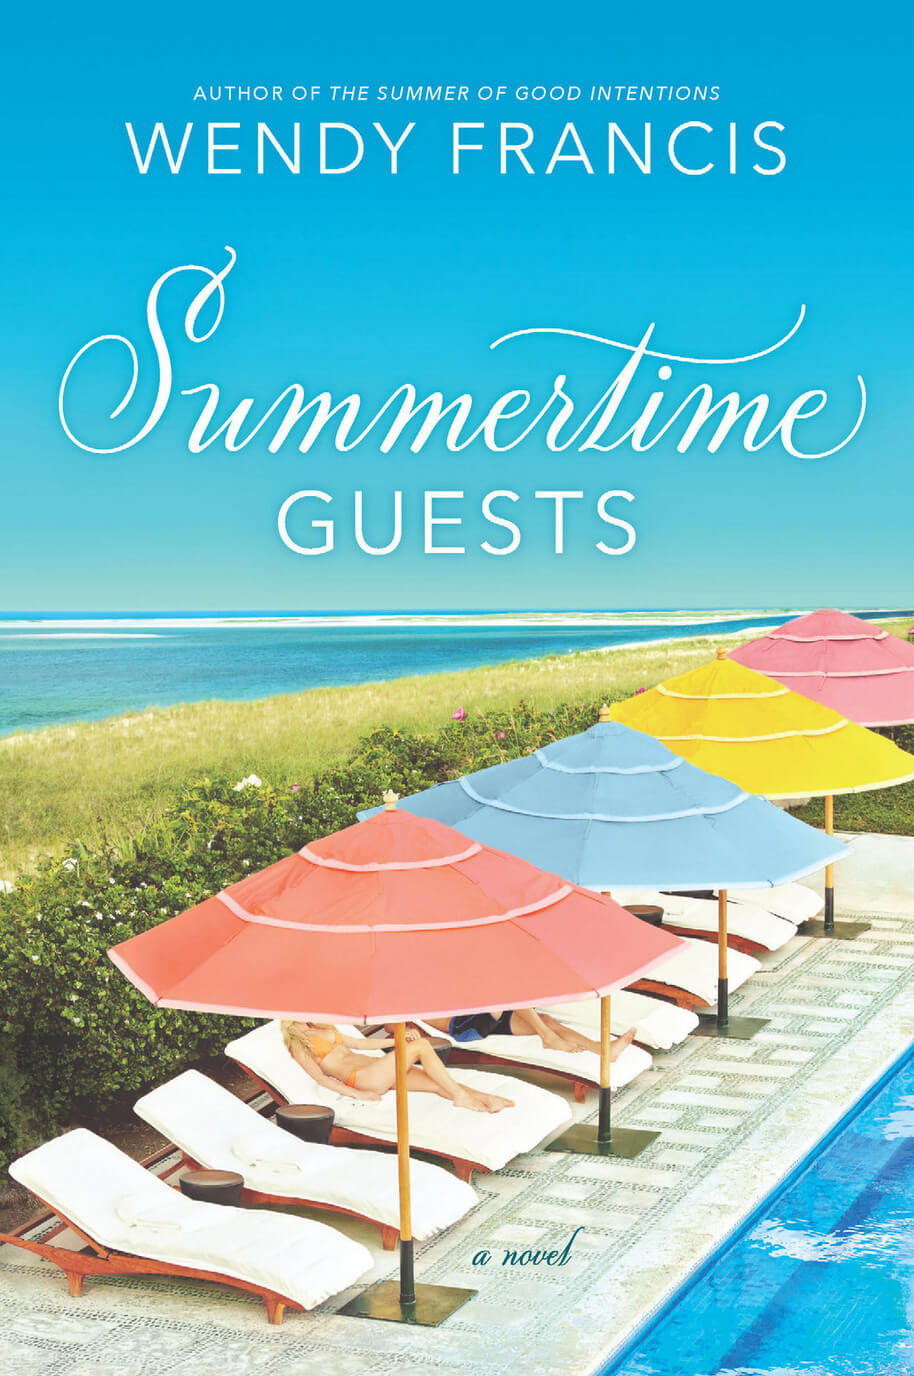 Summertime Guests: Wendy Francis